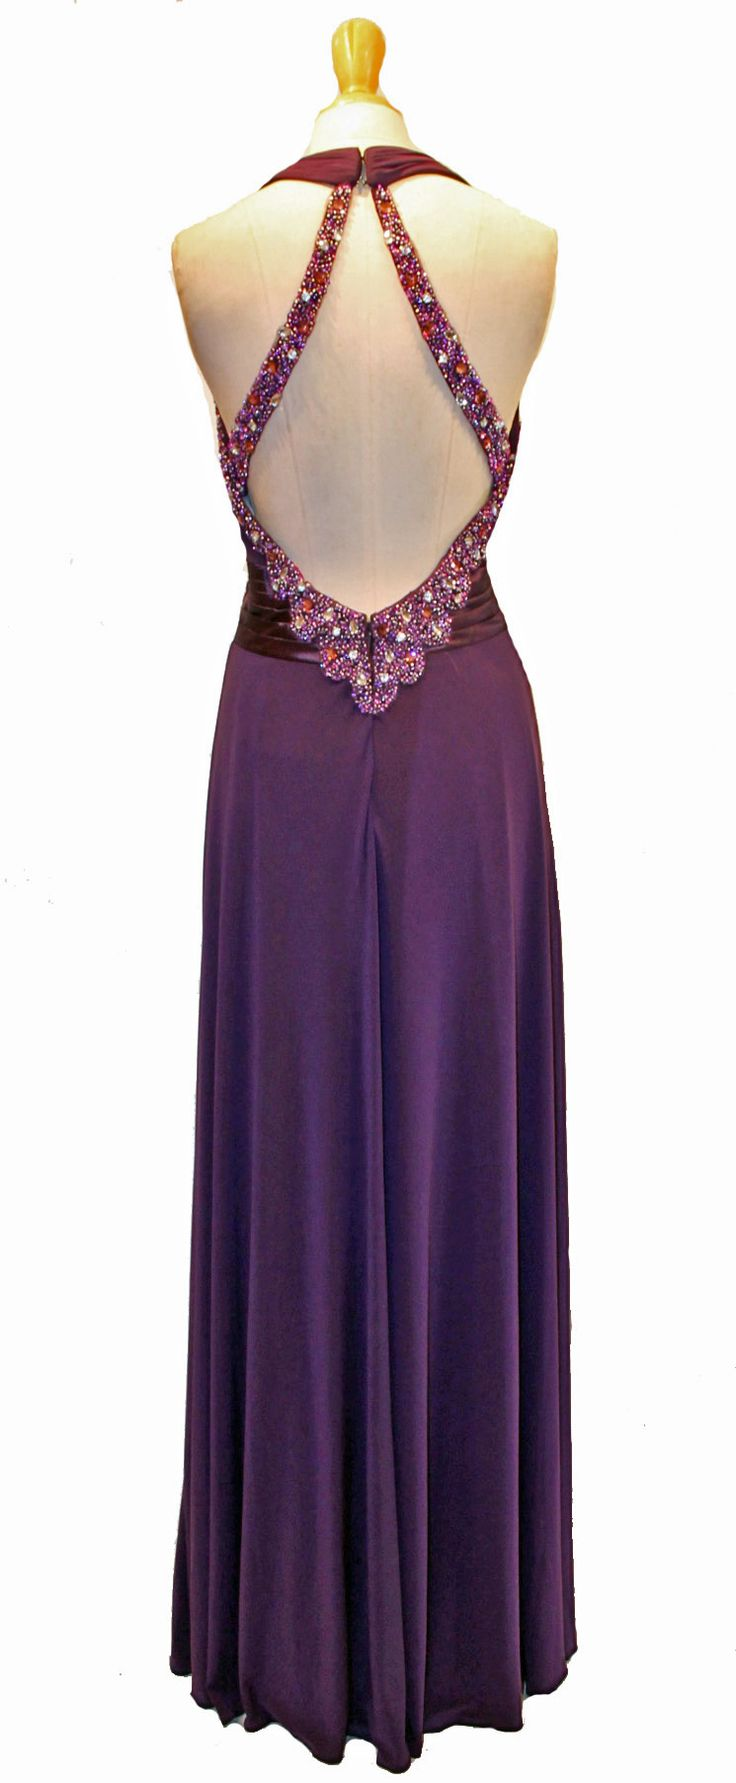 17 best Purple Prom Dresses images by Walk in Wardrobe on Pinterest ...